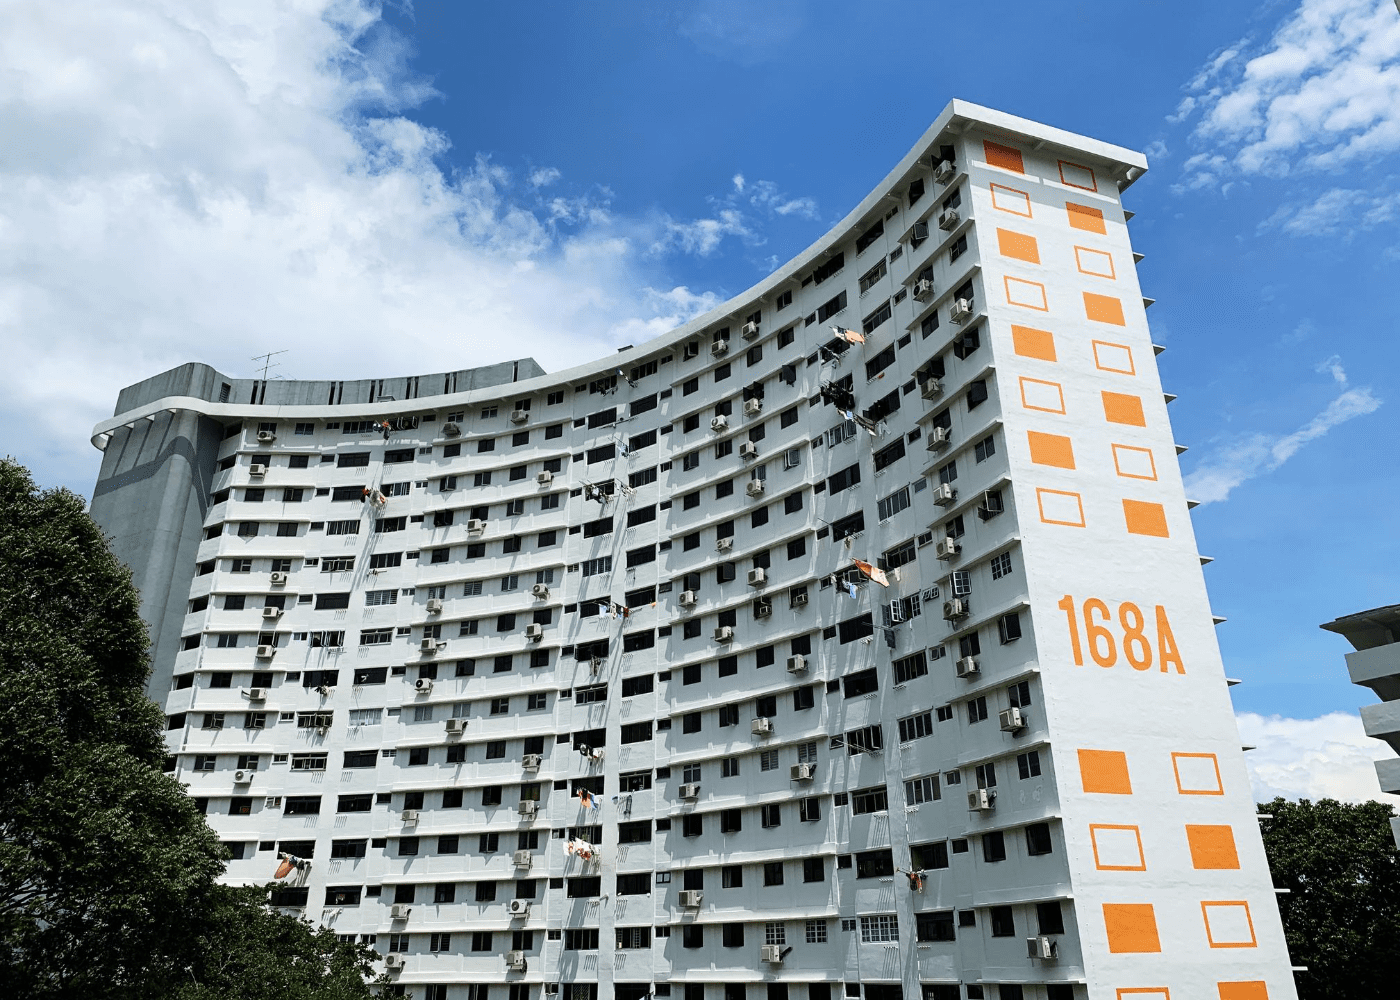 Blk 168A Stirling Road | HDB blocks in Singapore with unique designs